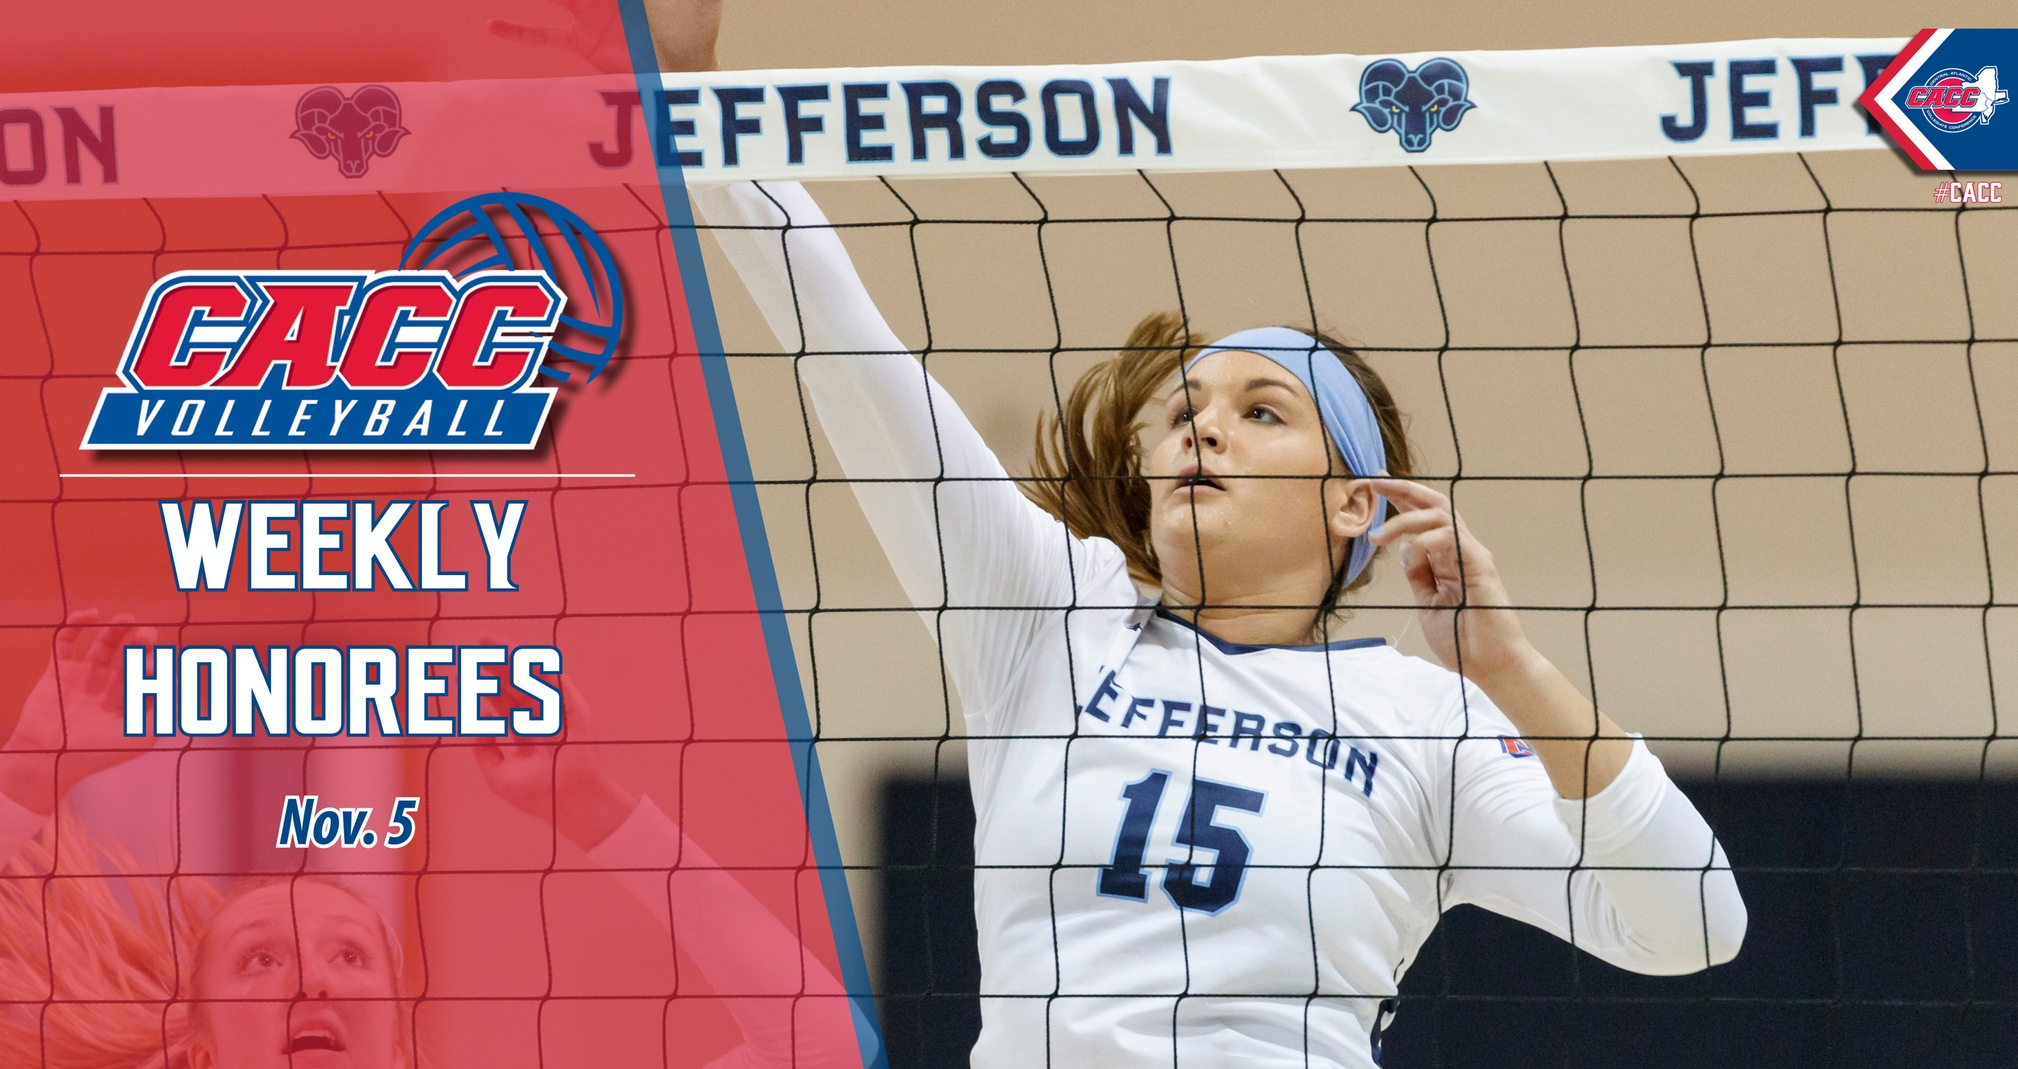 CACC Volleyball Weekly Honorees (Nov. 5)